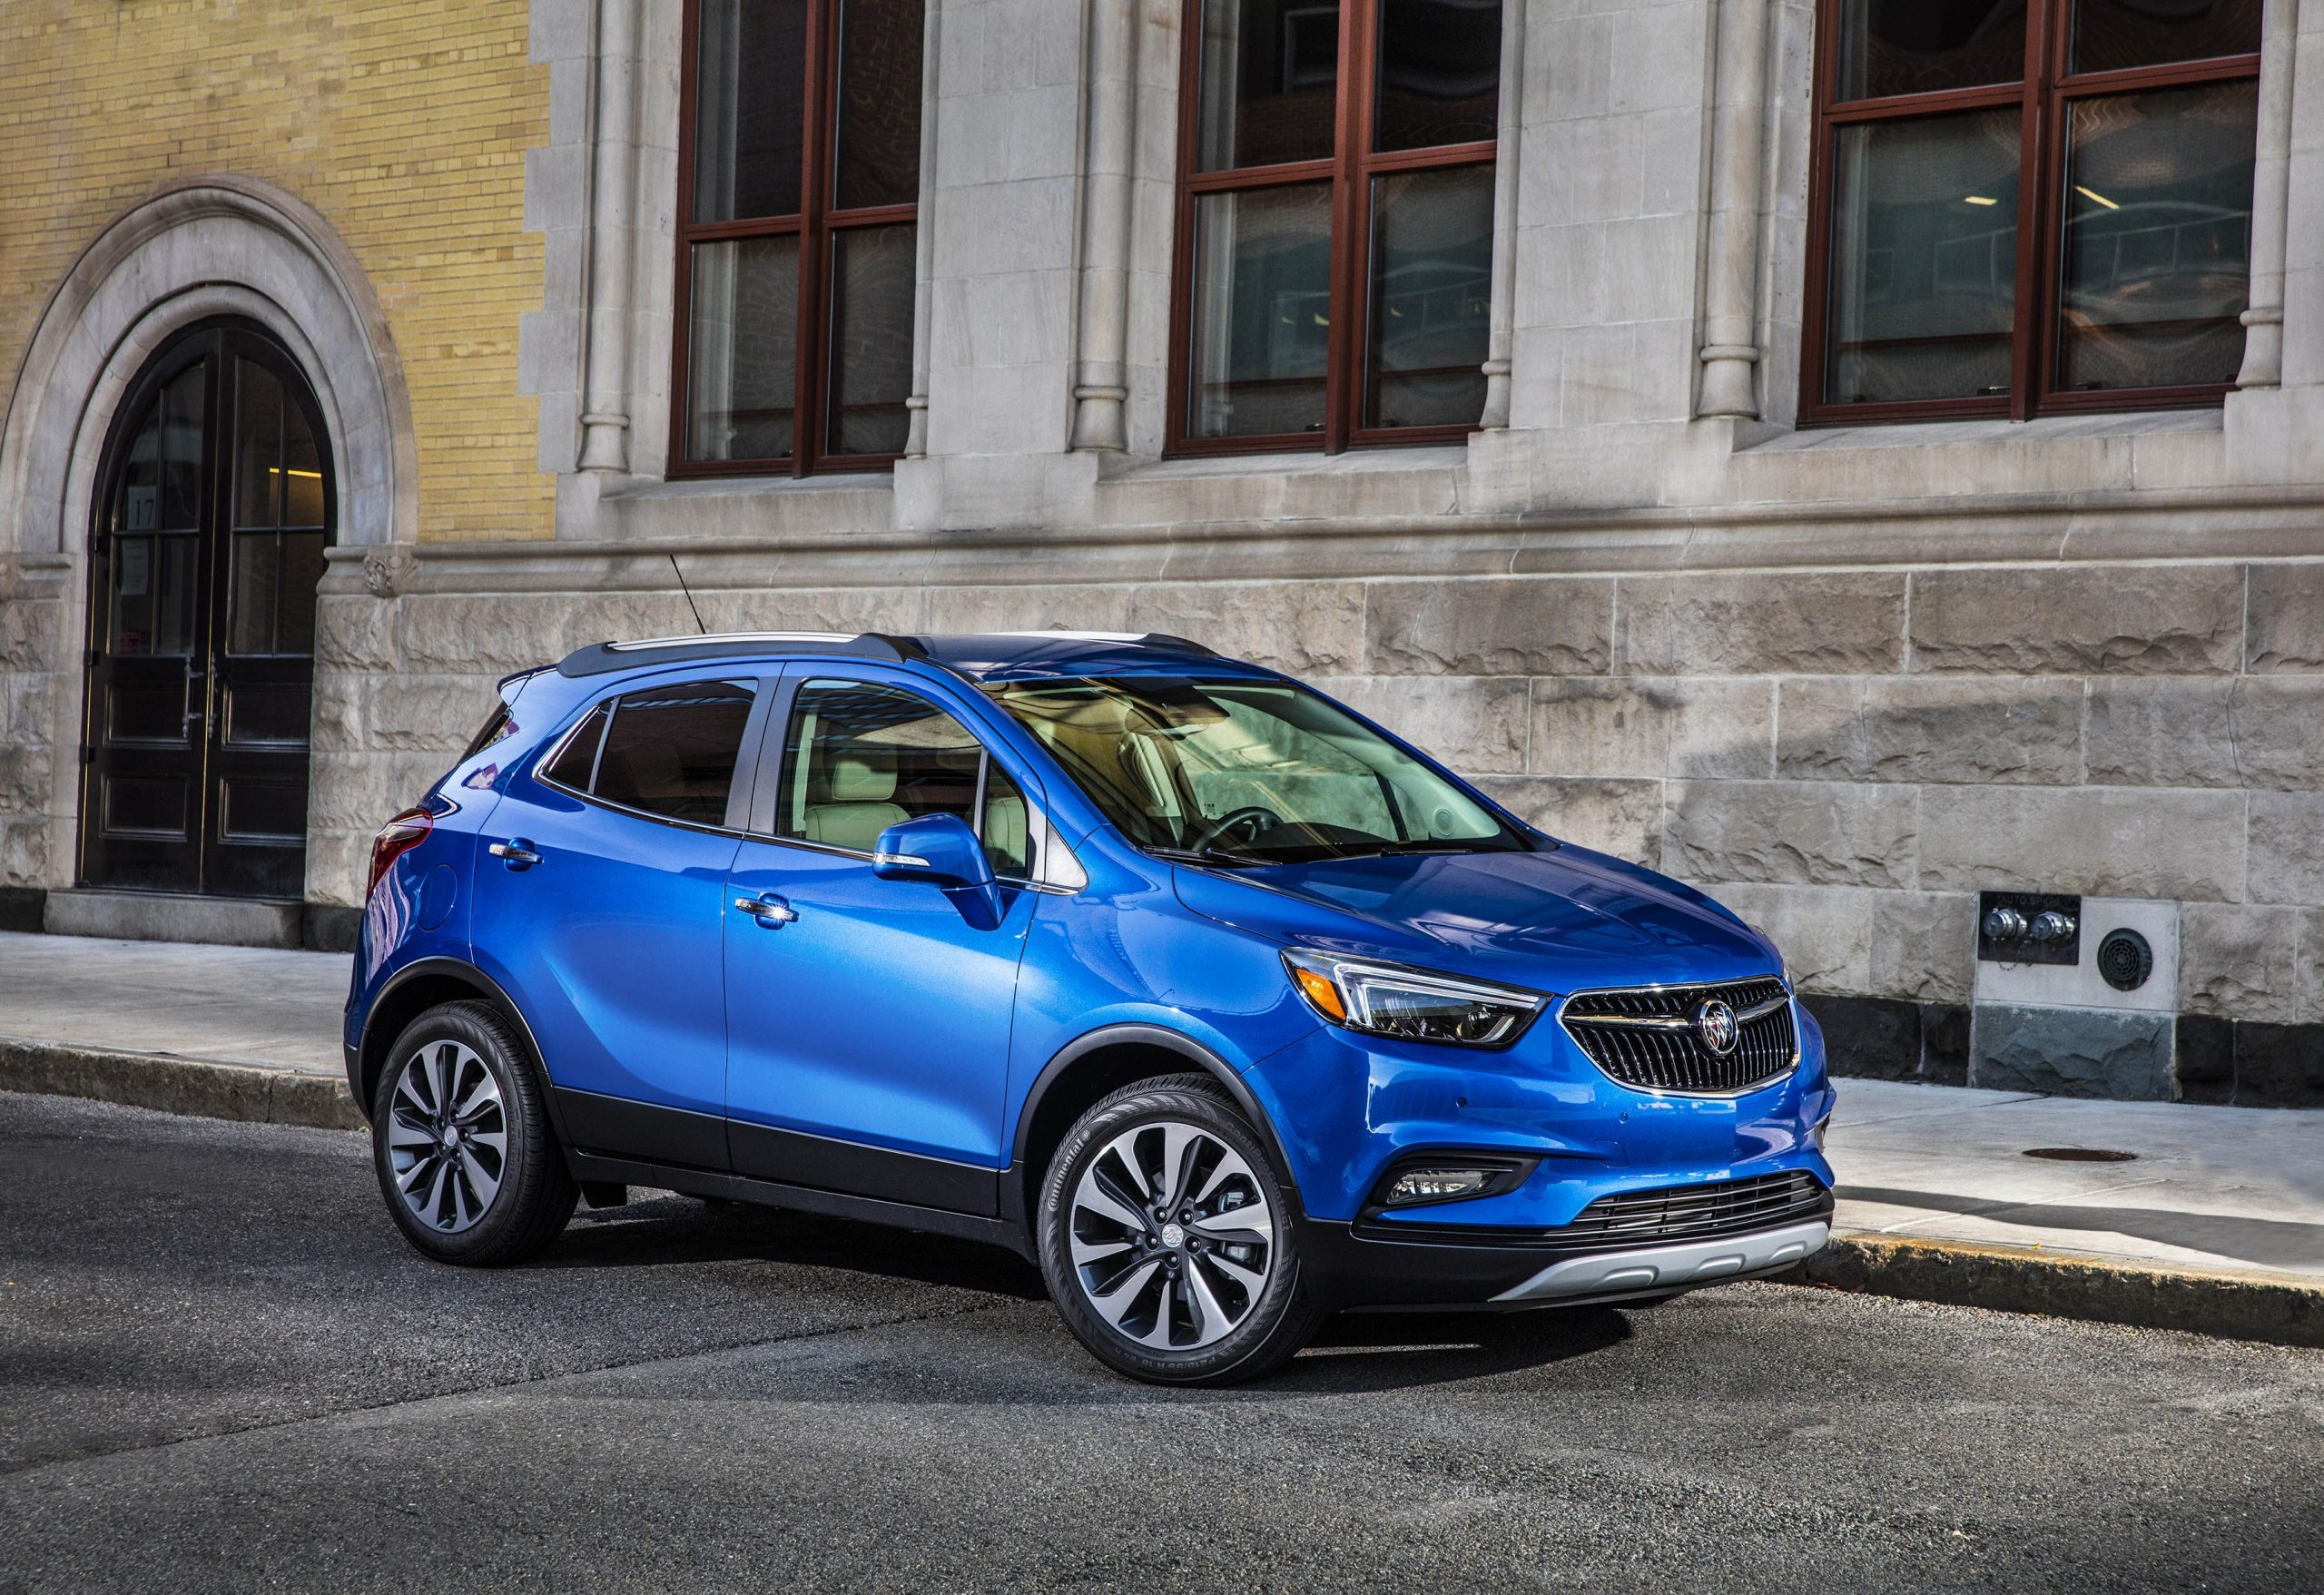 2020 Buick Encore Review, Pricing, And Specs 2022 Buick Encore Interior Dimensions, Lease, Length